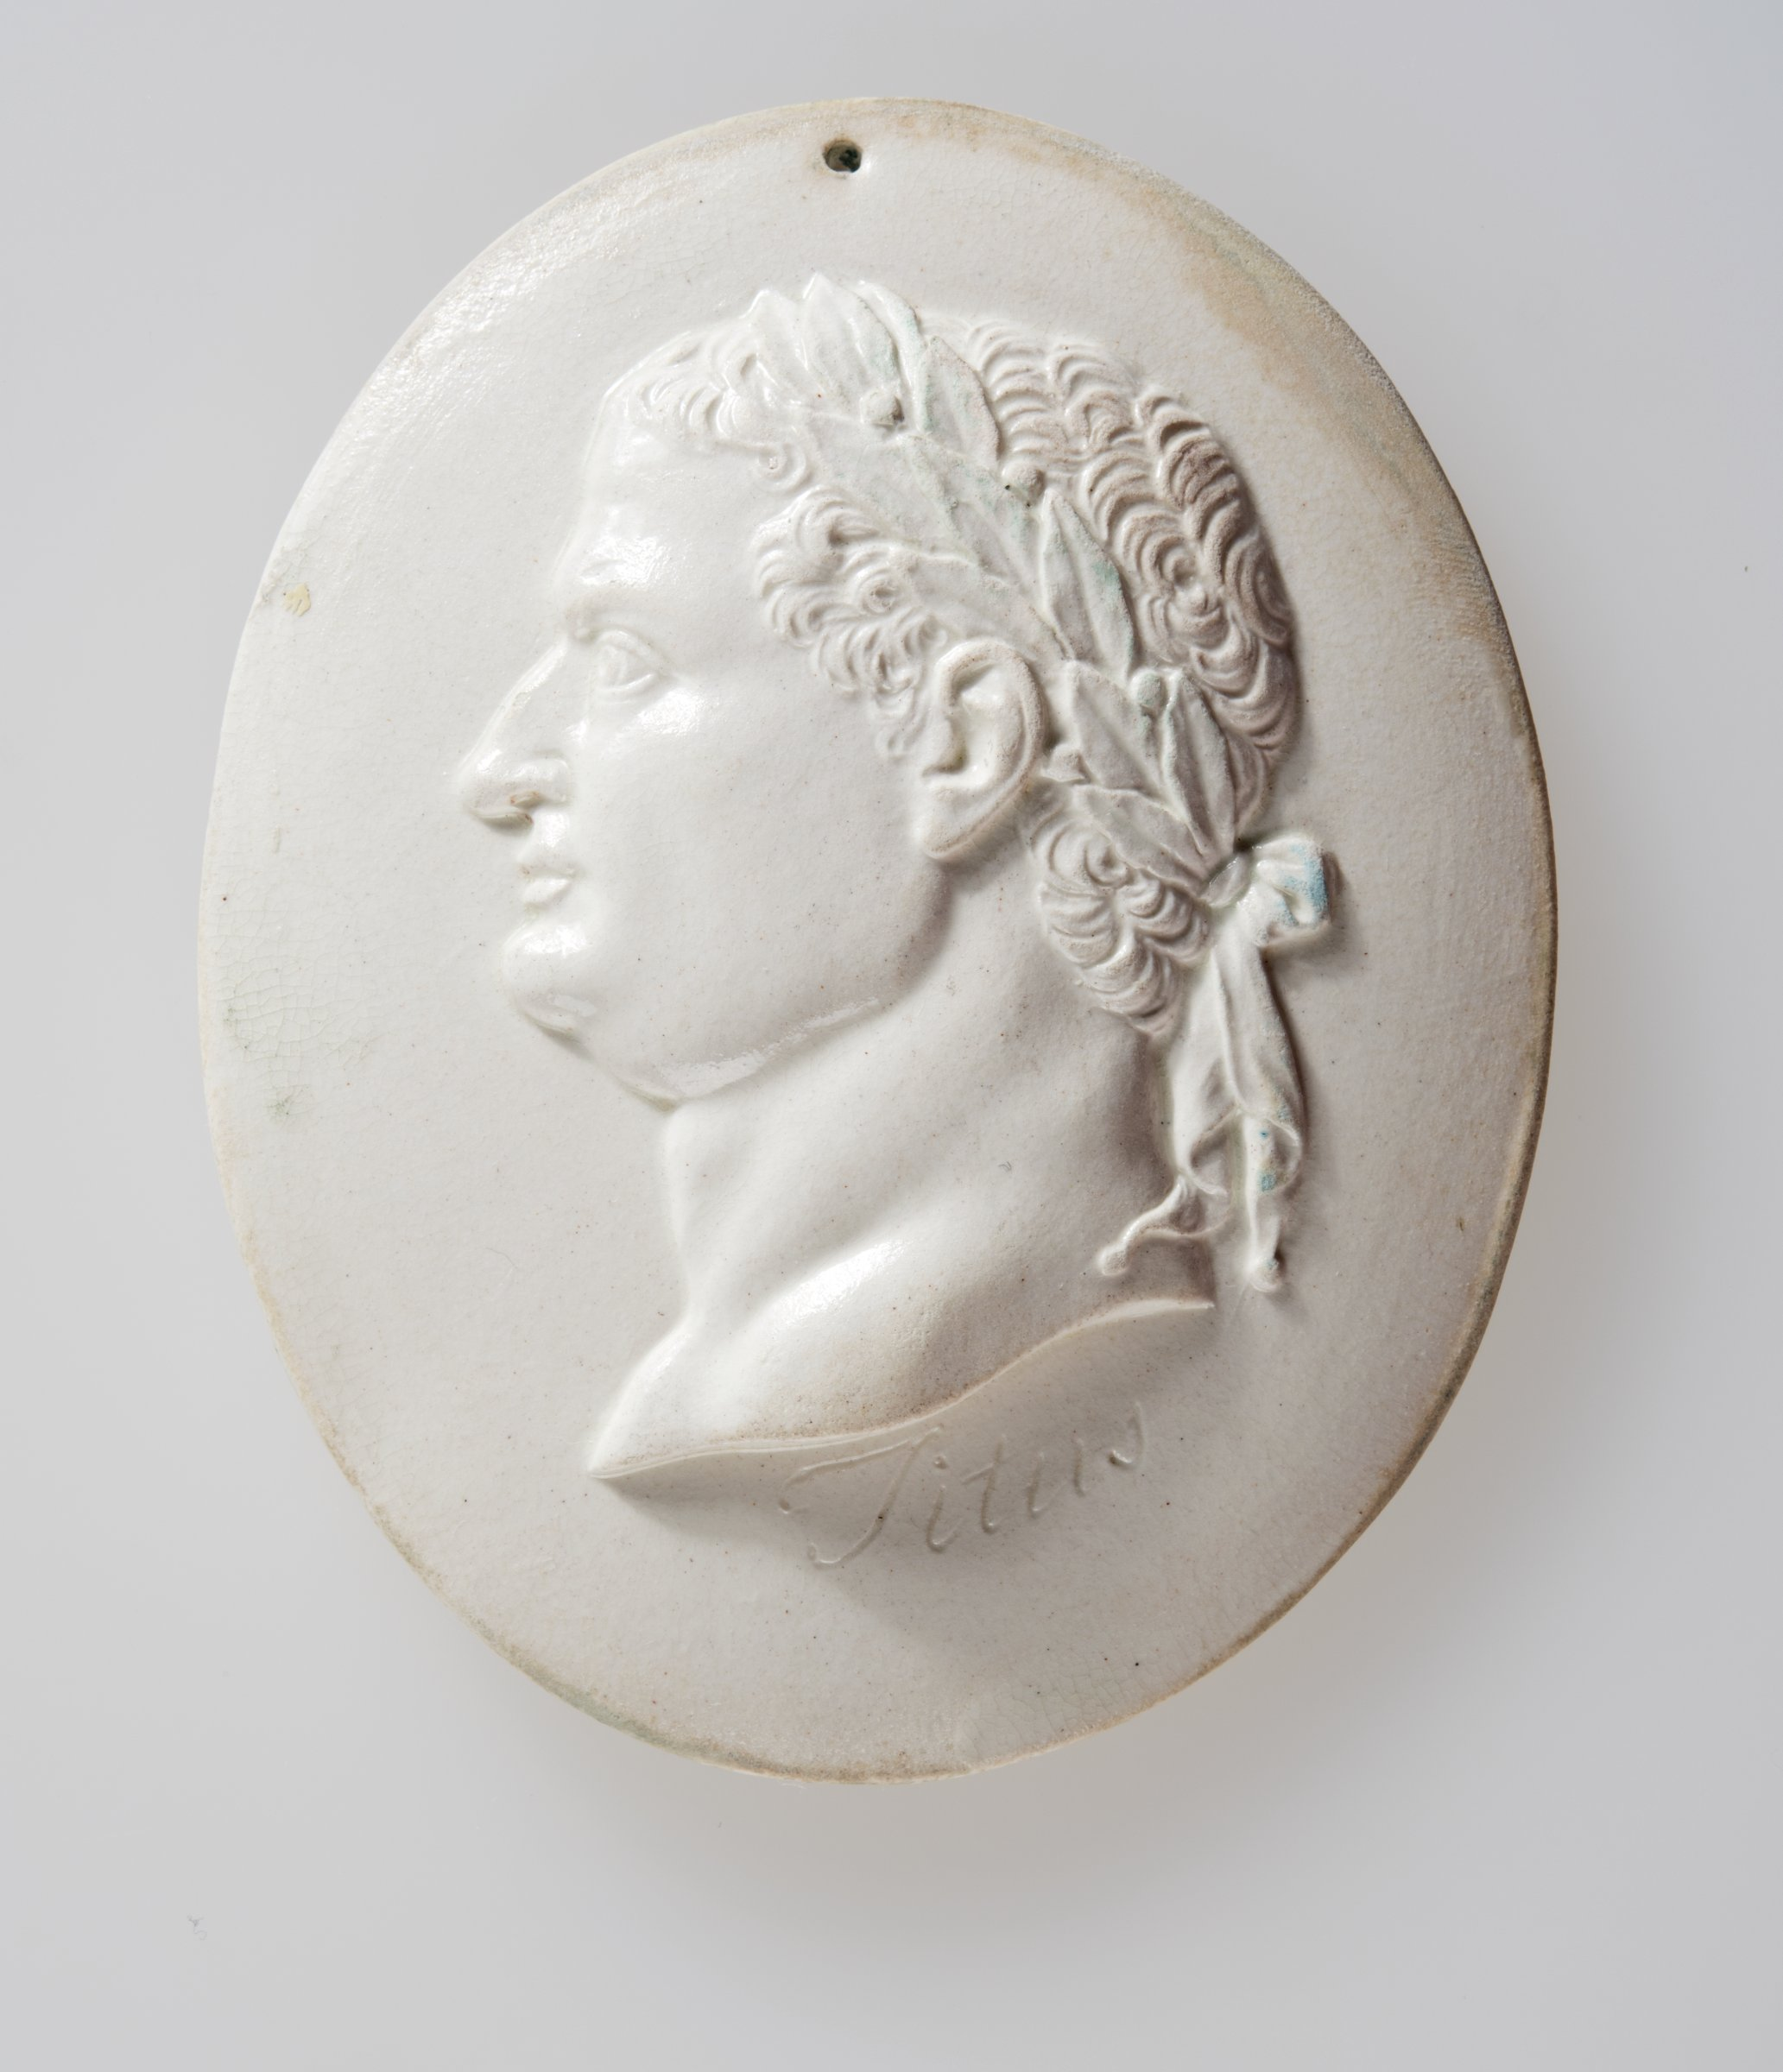 Oval, creamware portrait medallion of the Roman Emperor Titus wearing laurel leaf crown to left, the name Titus inscribed below the truncation.